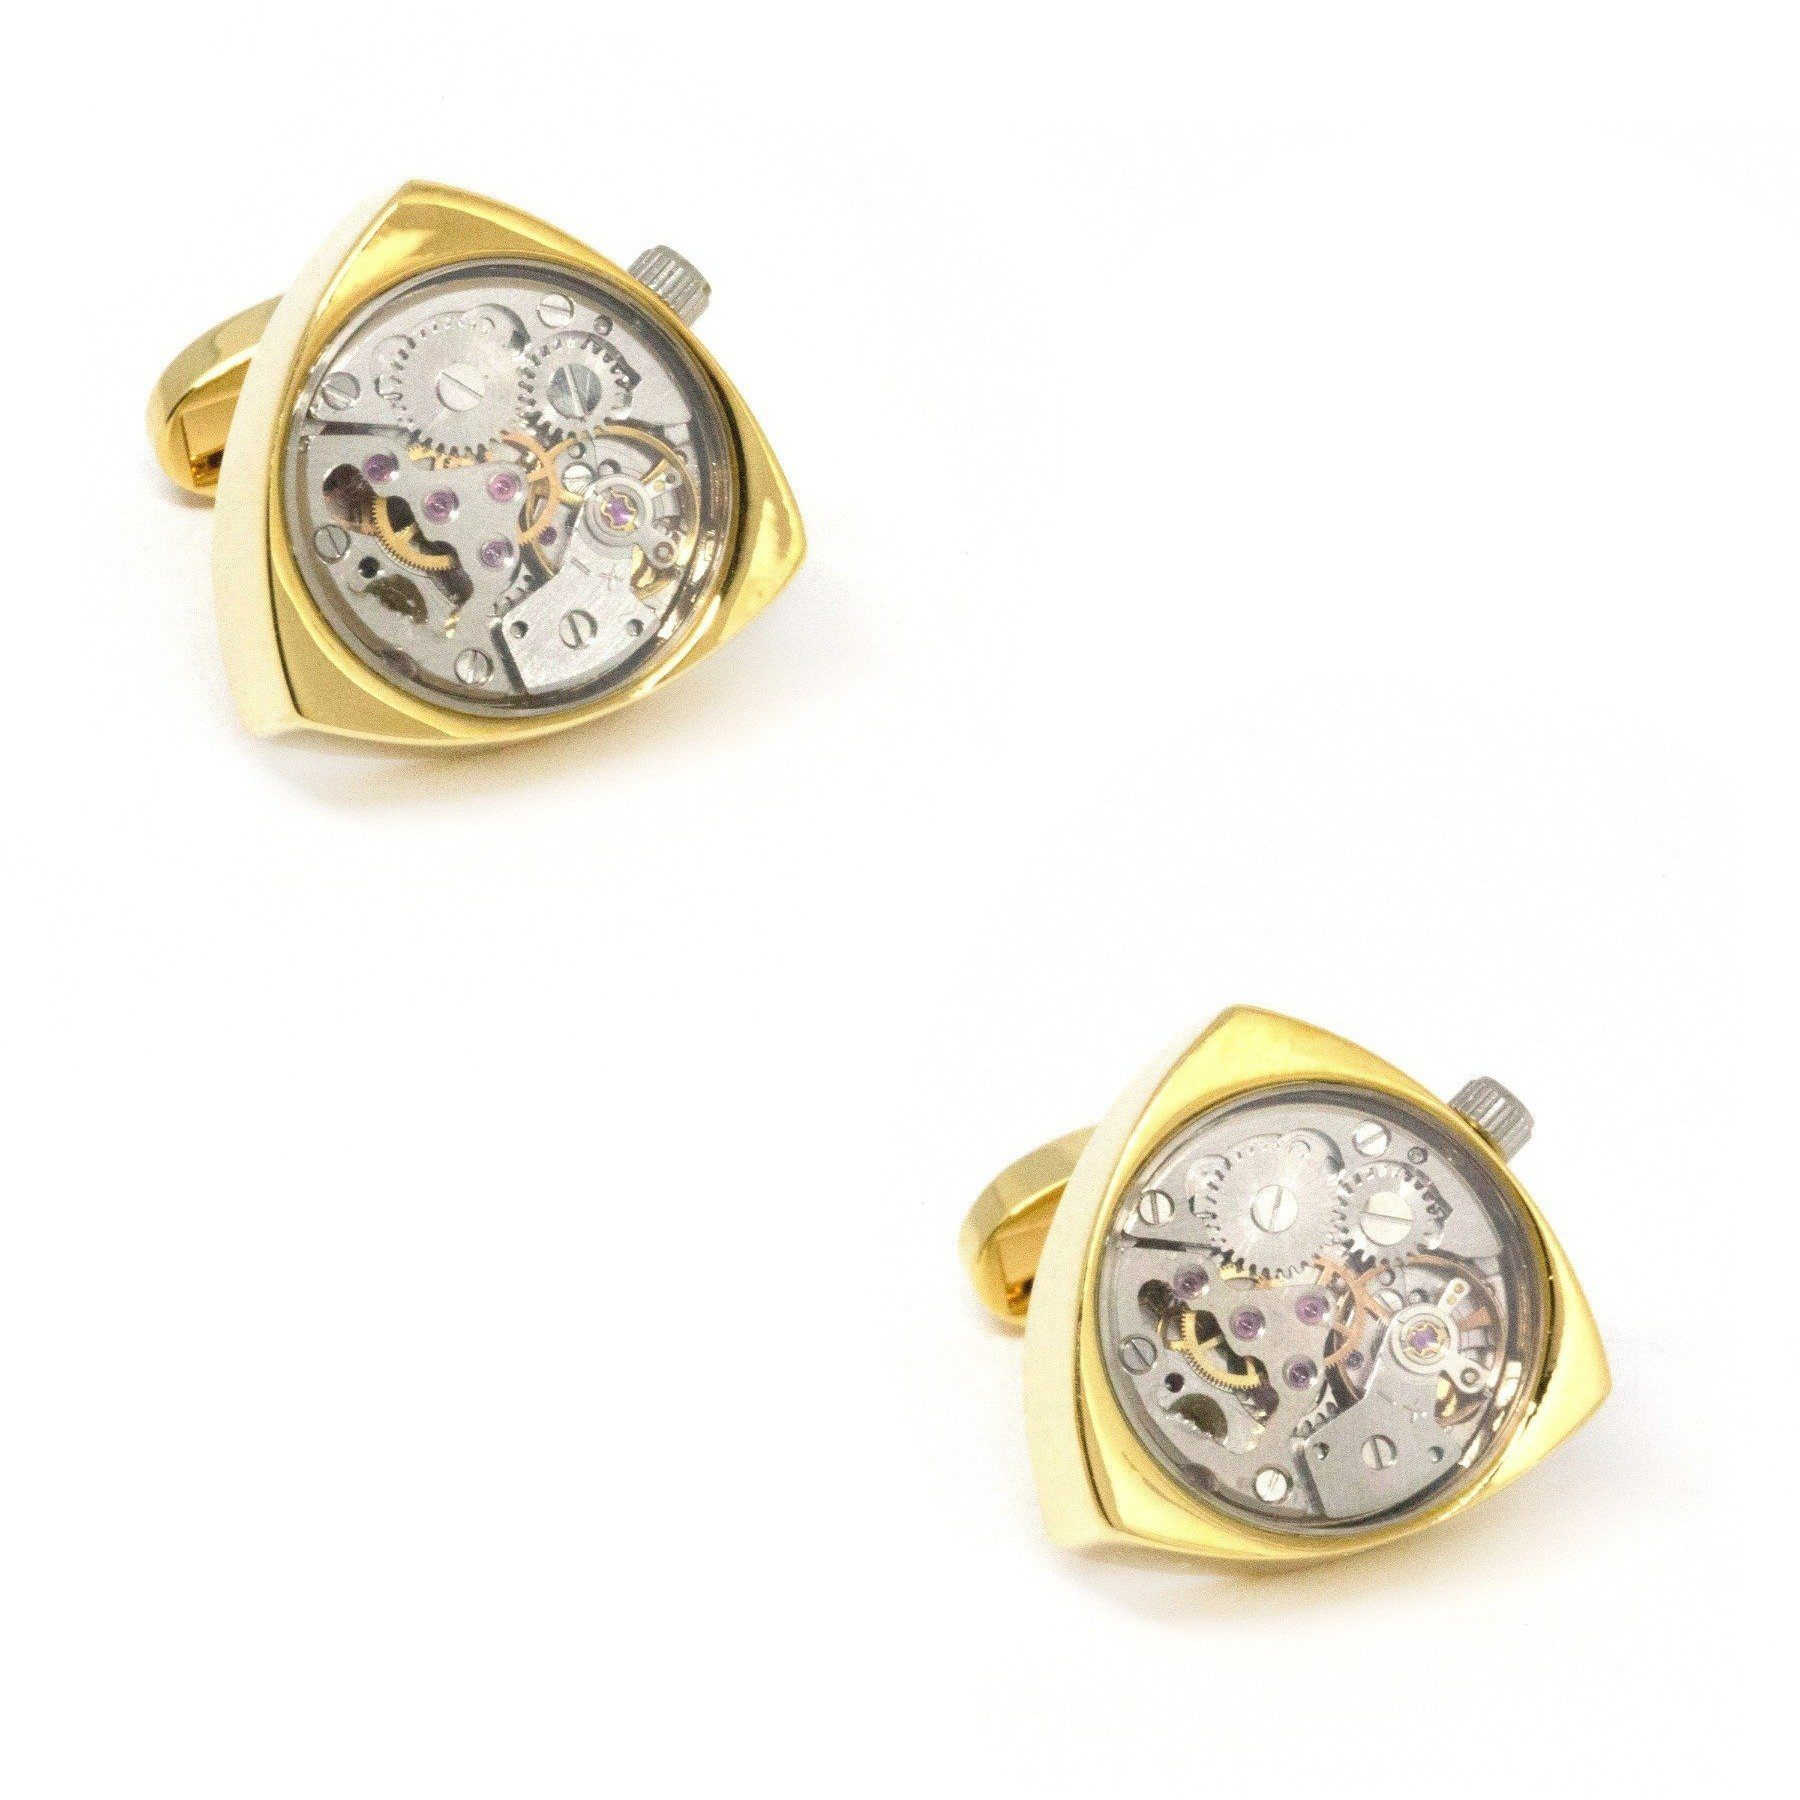 Working Watch Movement Steampunk Reuleaux Cufflinks Gold and Silver, Novelty Cufflinks, Cuffed.com.au, CL5562, $79.00